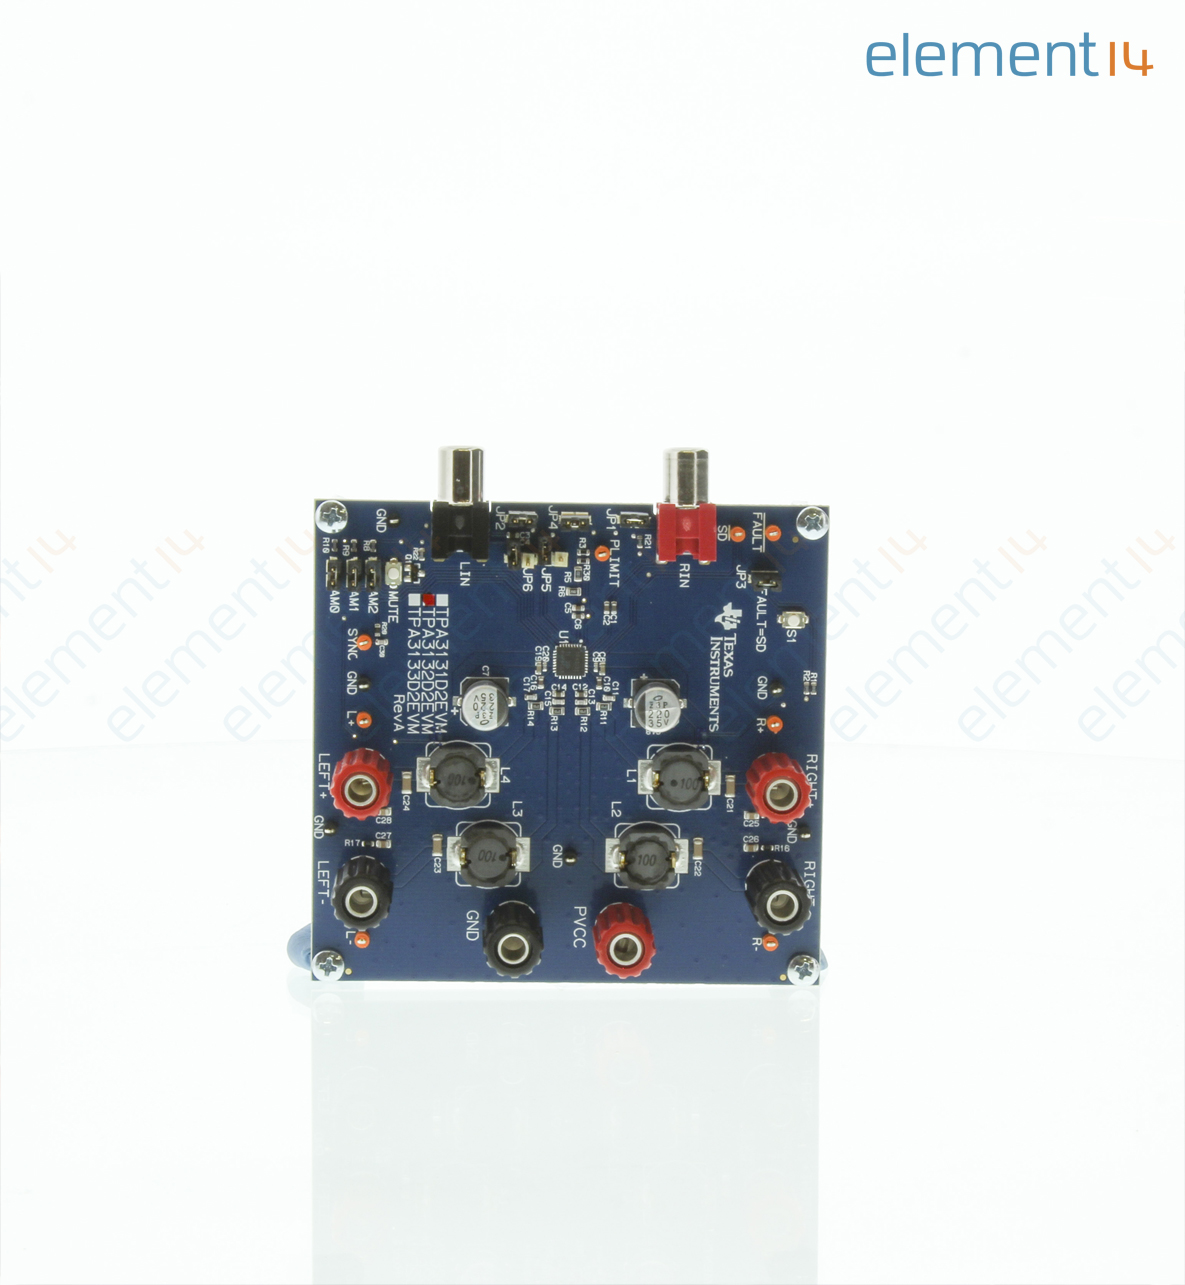 Tpa3131d2evm Texas Instruments Evaluation Board Audio Amplifier Buy Circuit Boardaudio Tpa3131d2 360 Add To Compare